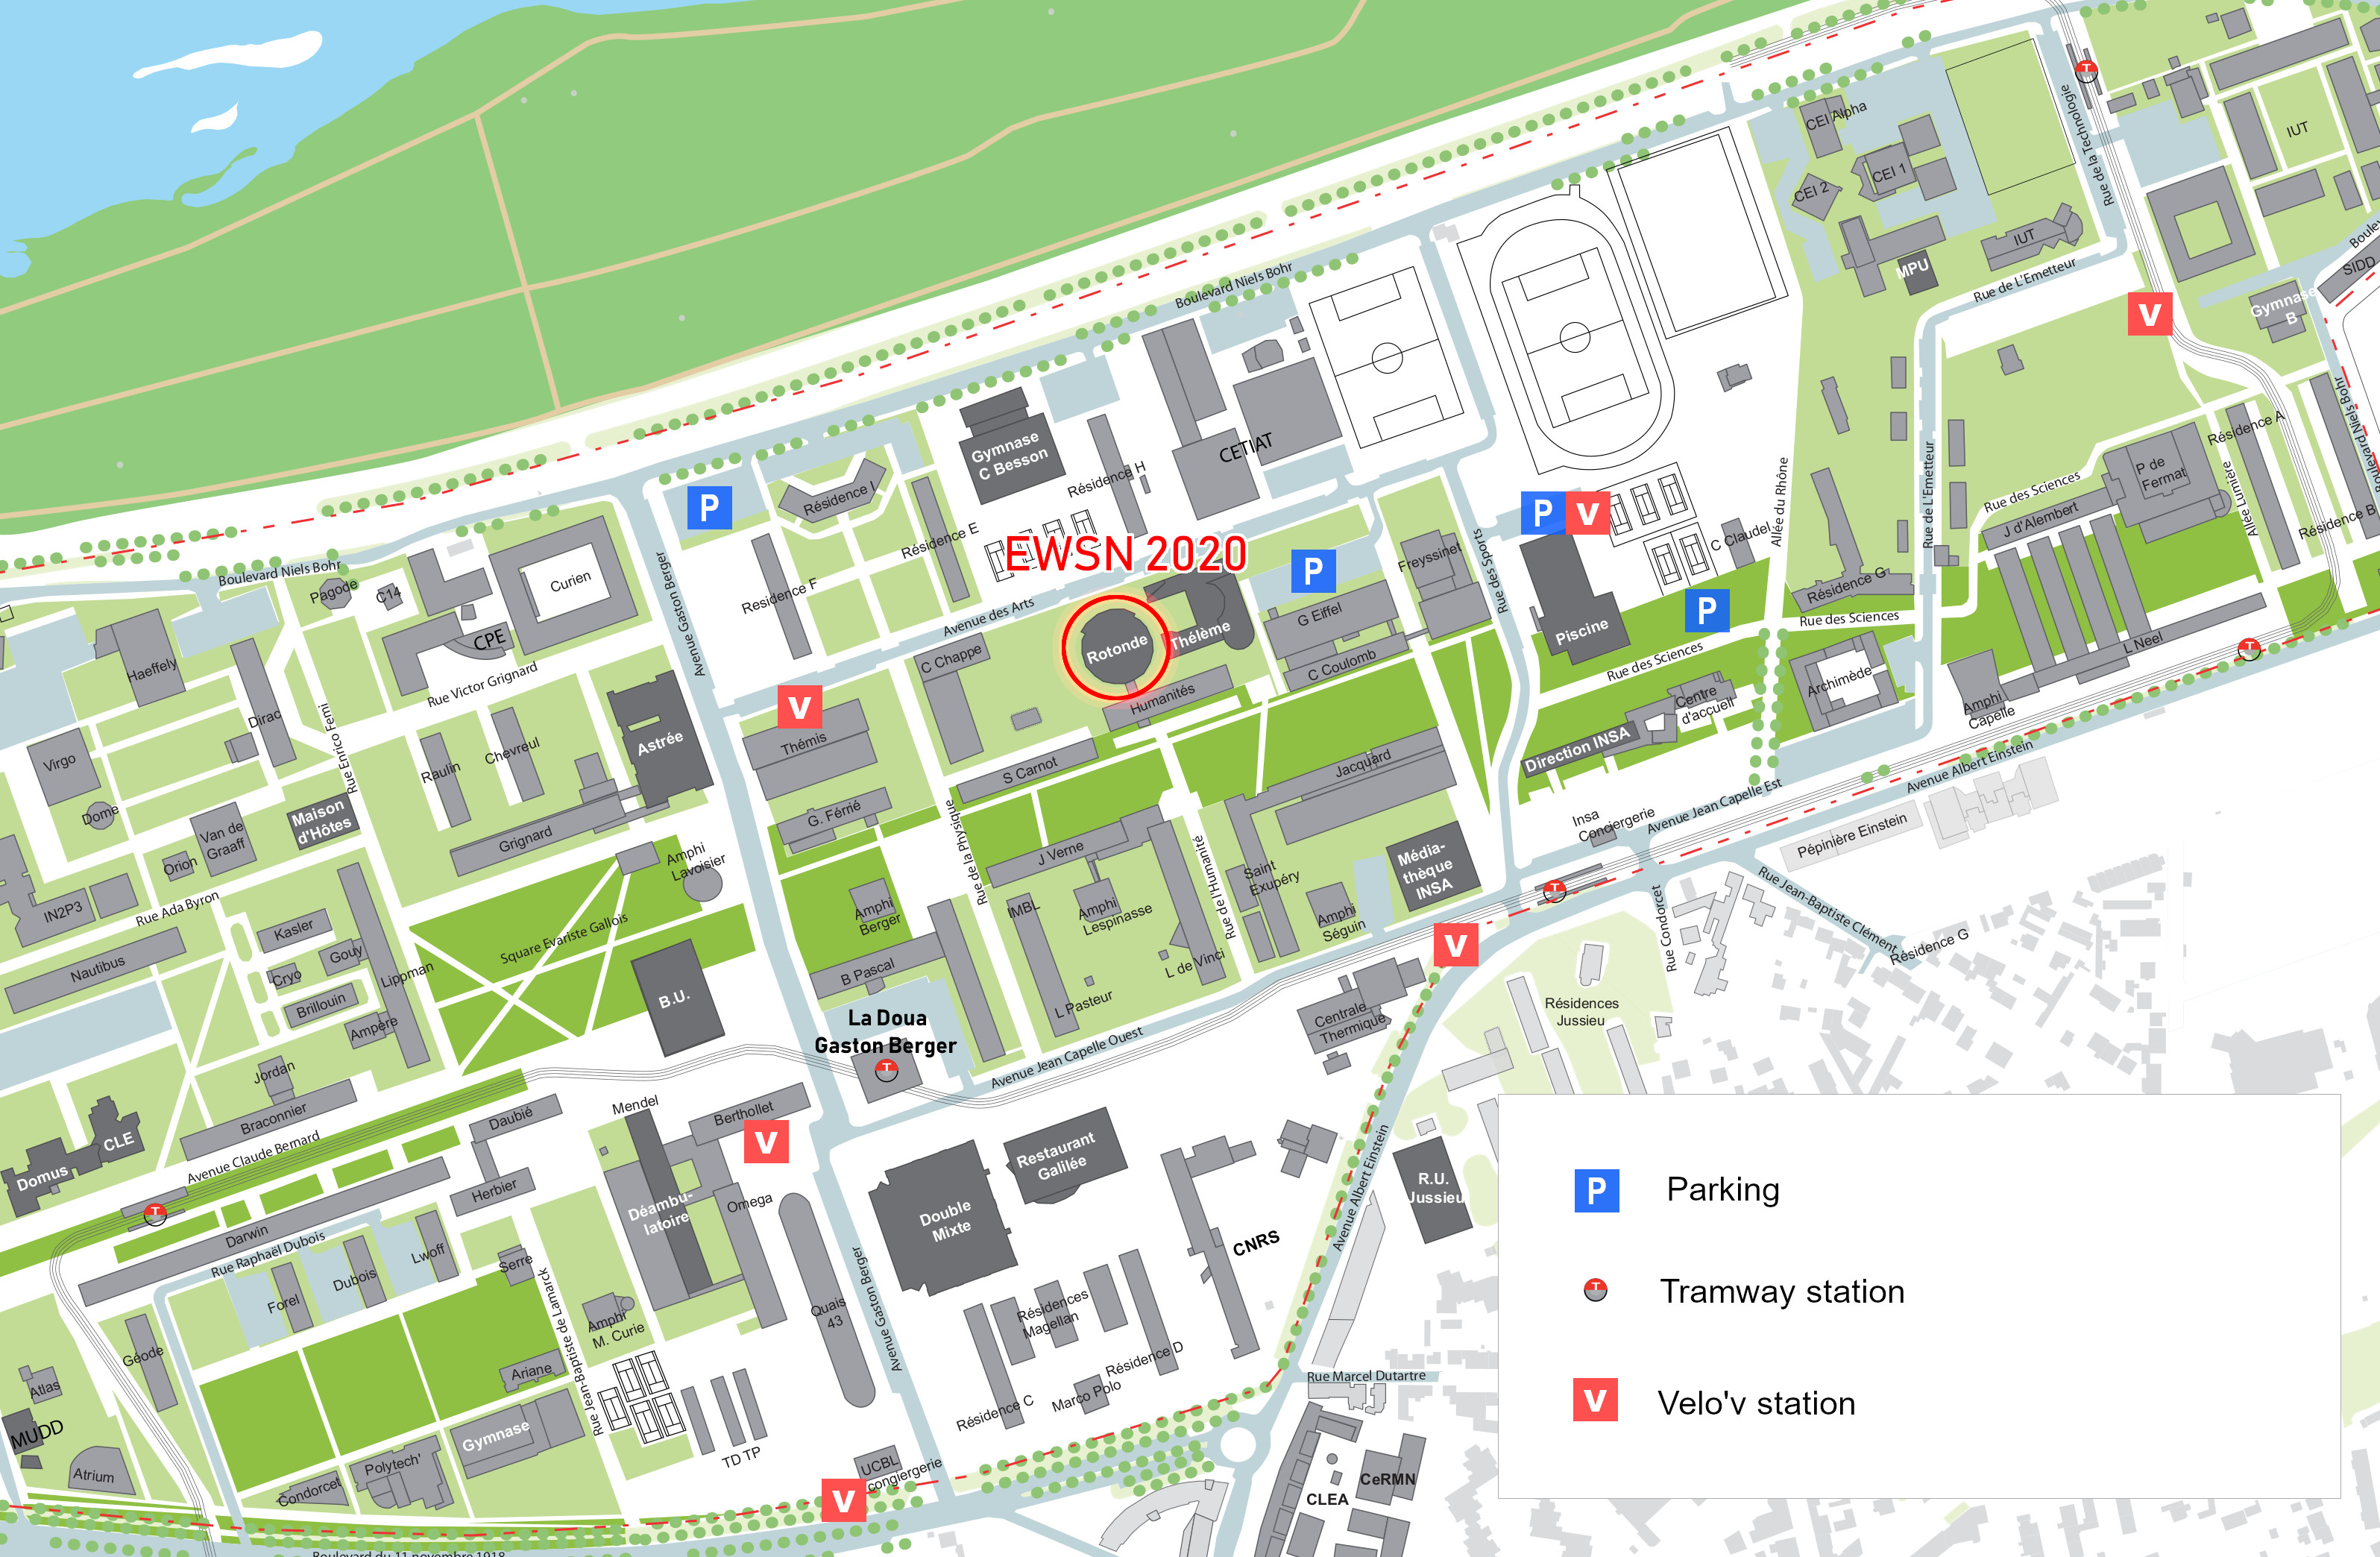 Map of La Doua campus